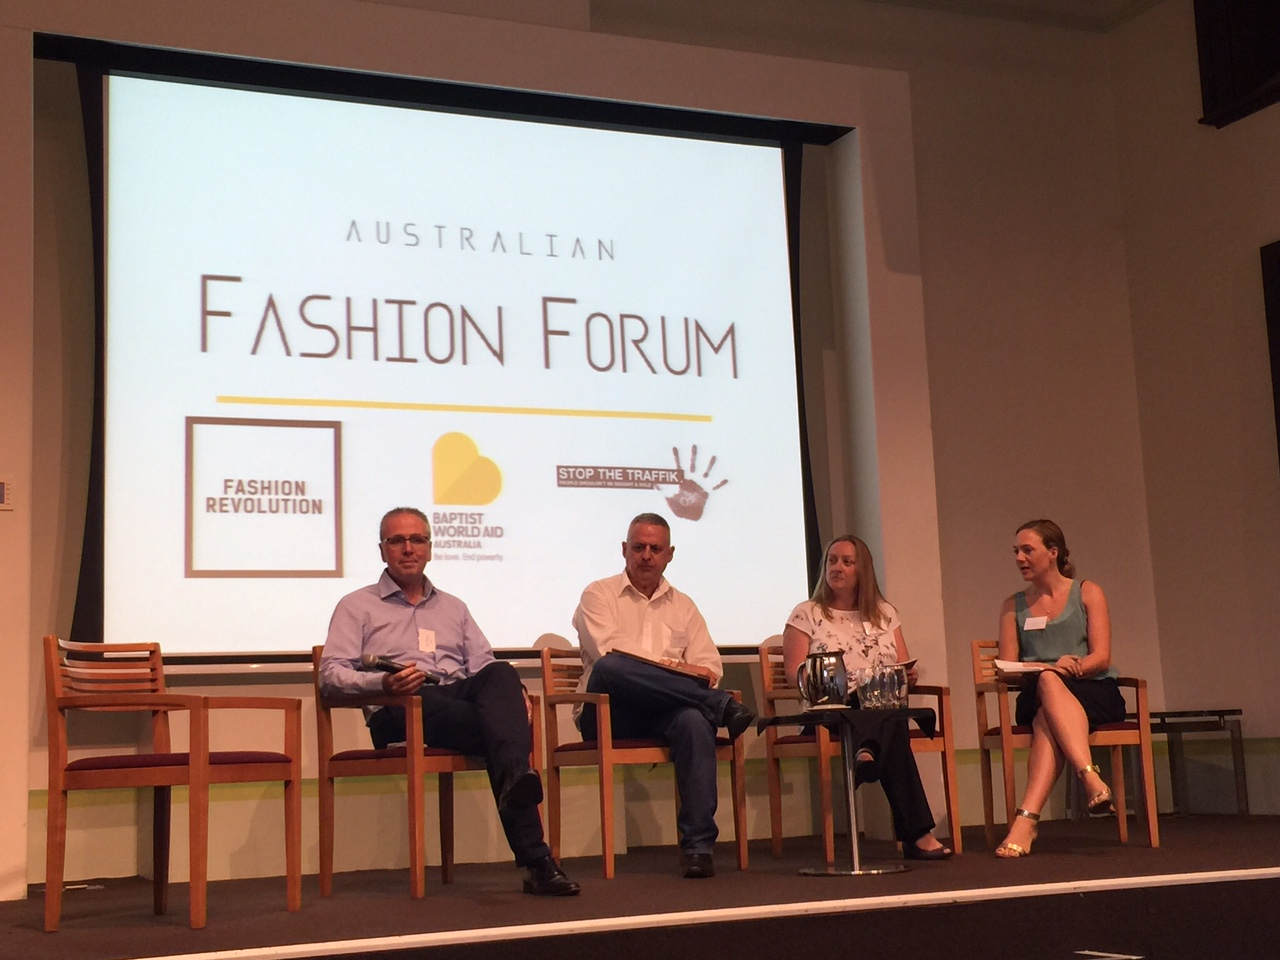 Co-hosting Australian Fashion Forum on Living Wages in the Fashion Industry, November 2015